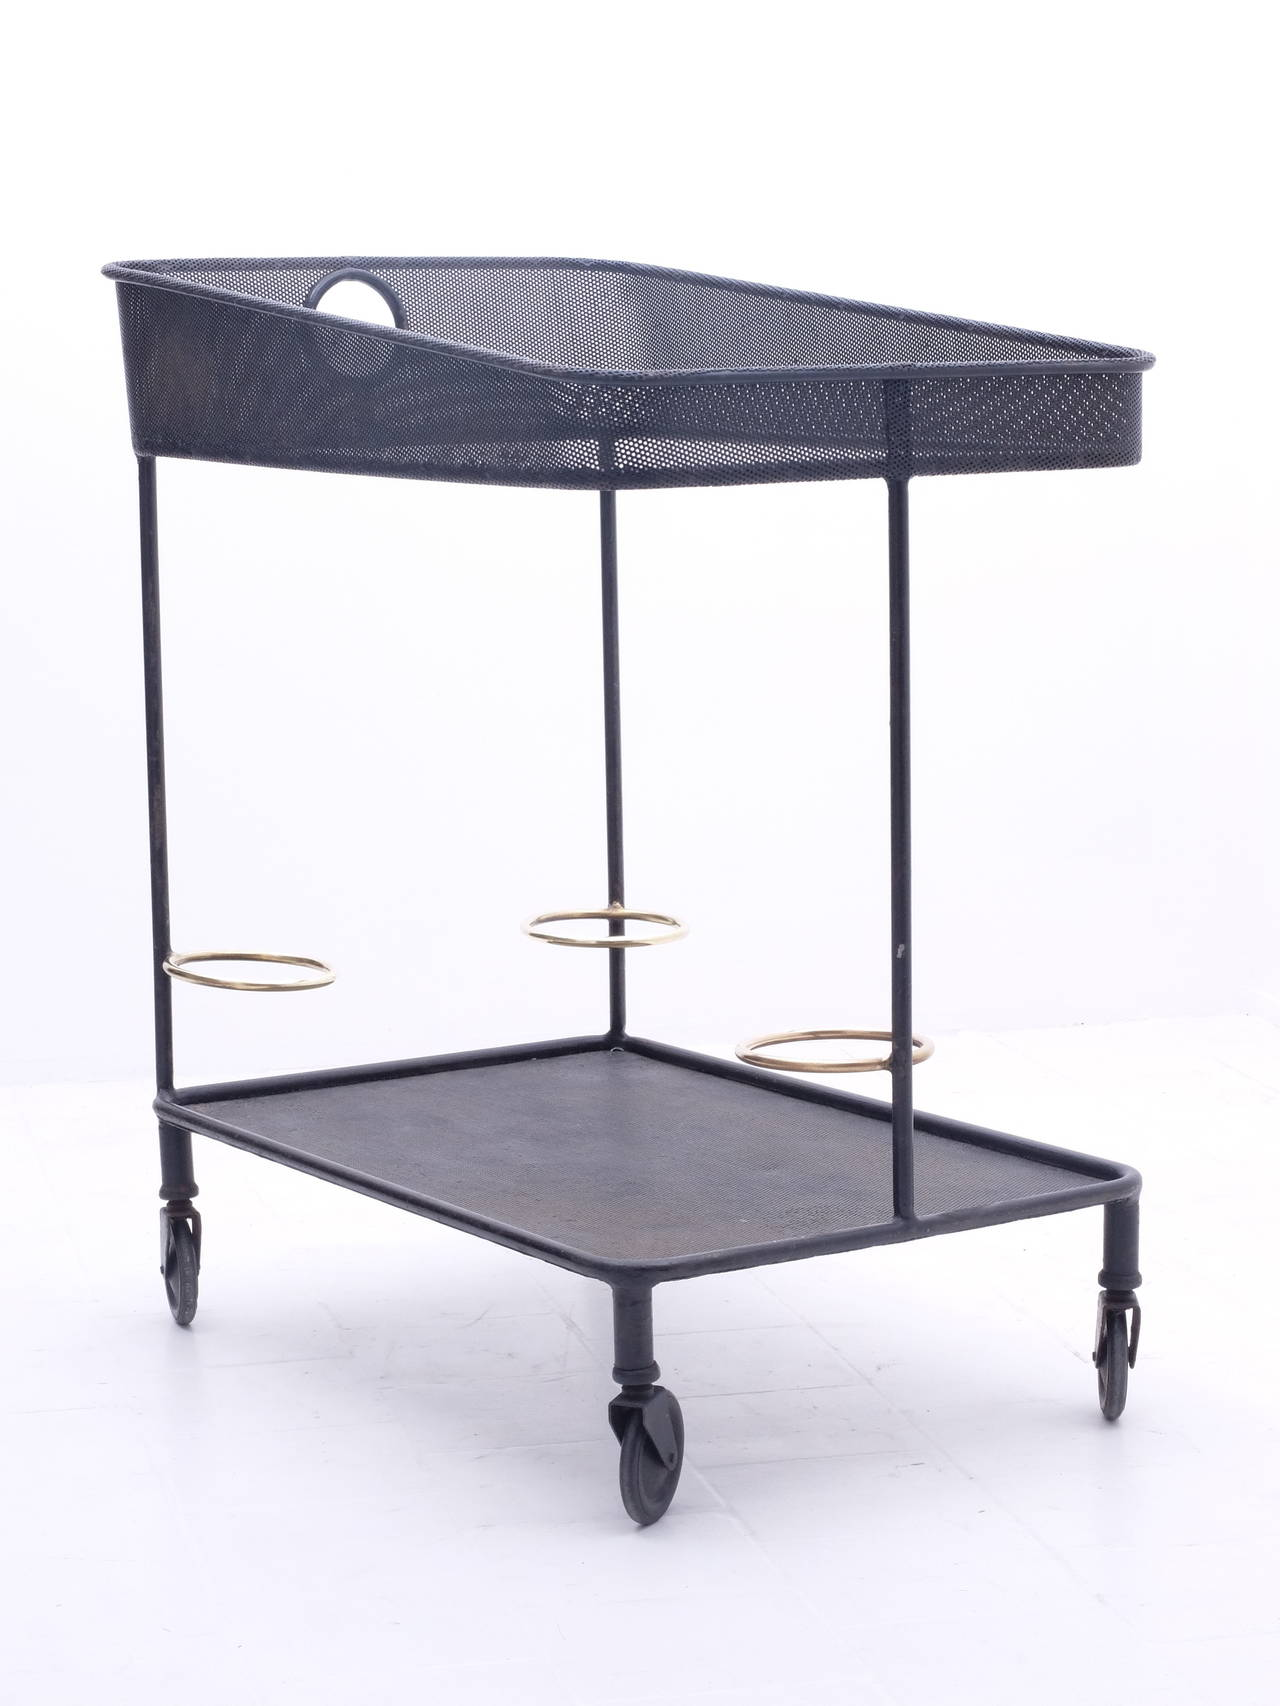 Serving table in perforated sheet metal or rigitule byMathieu Matégot by Ateliers Mathieu Mategot, France. Rigitule glass and brass. Venise model, 1953. Documented and referenced in MathieuMatégot by Jousse Entreprise. Totally untouched and in